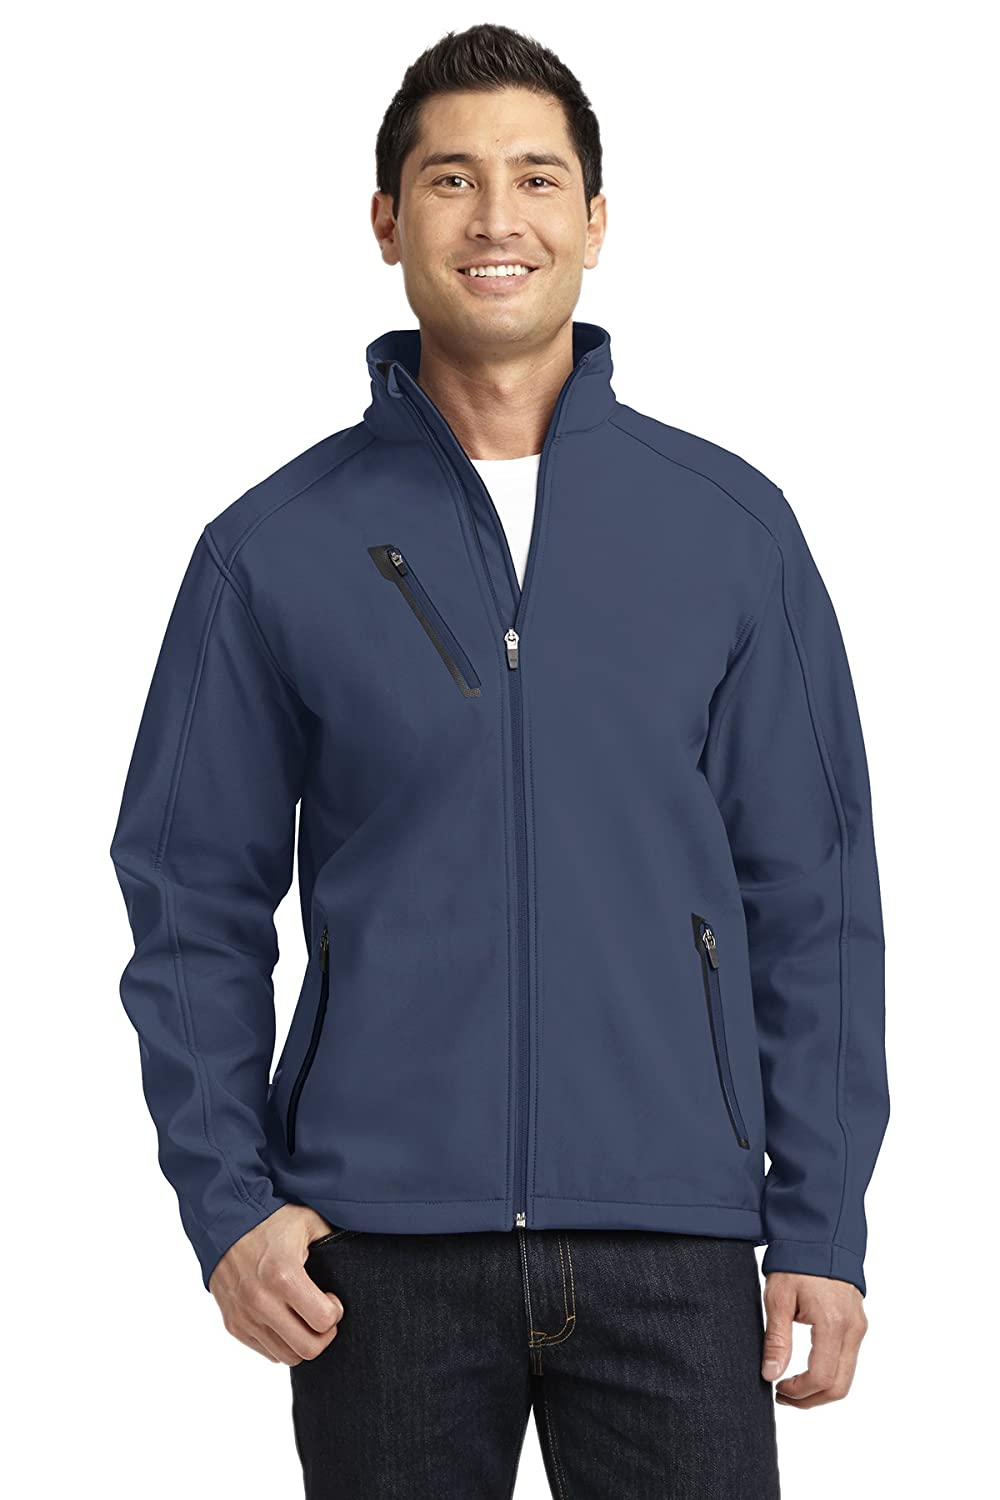 Port Authority Men's Welded Soft Shell Jacket